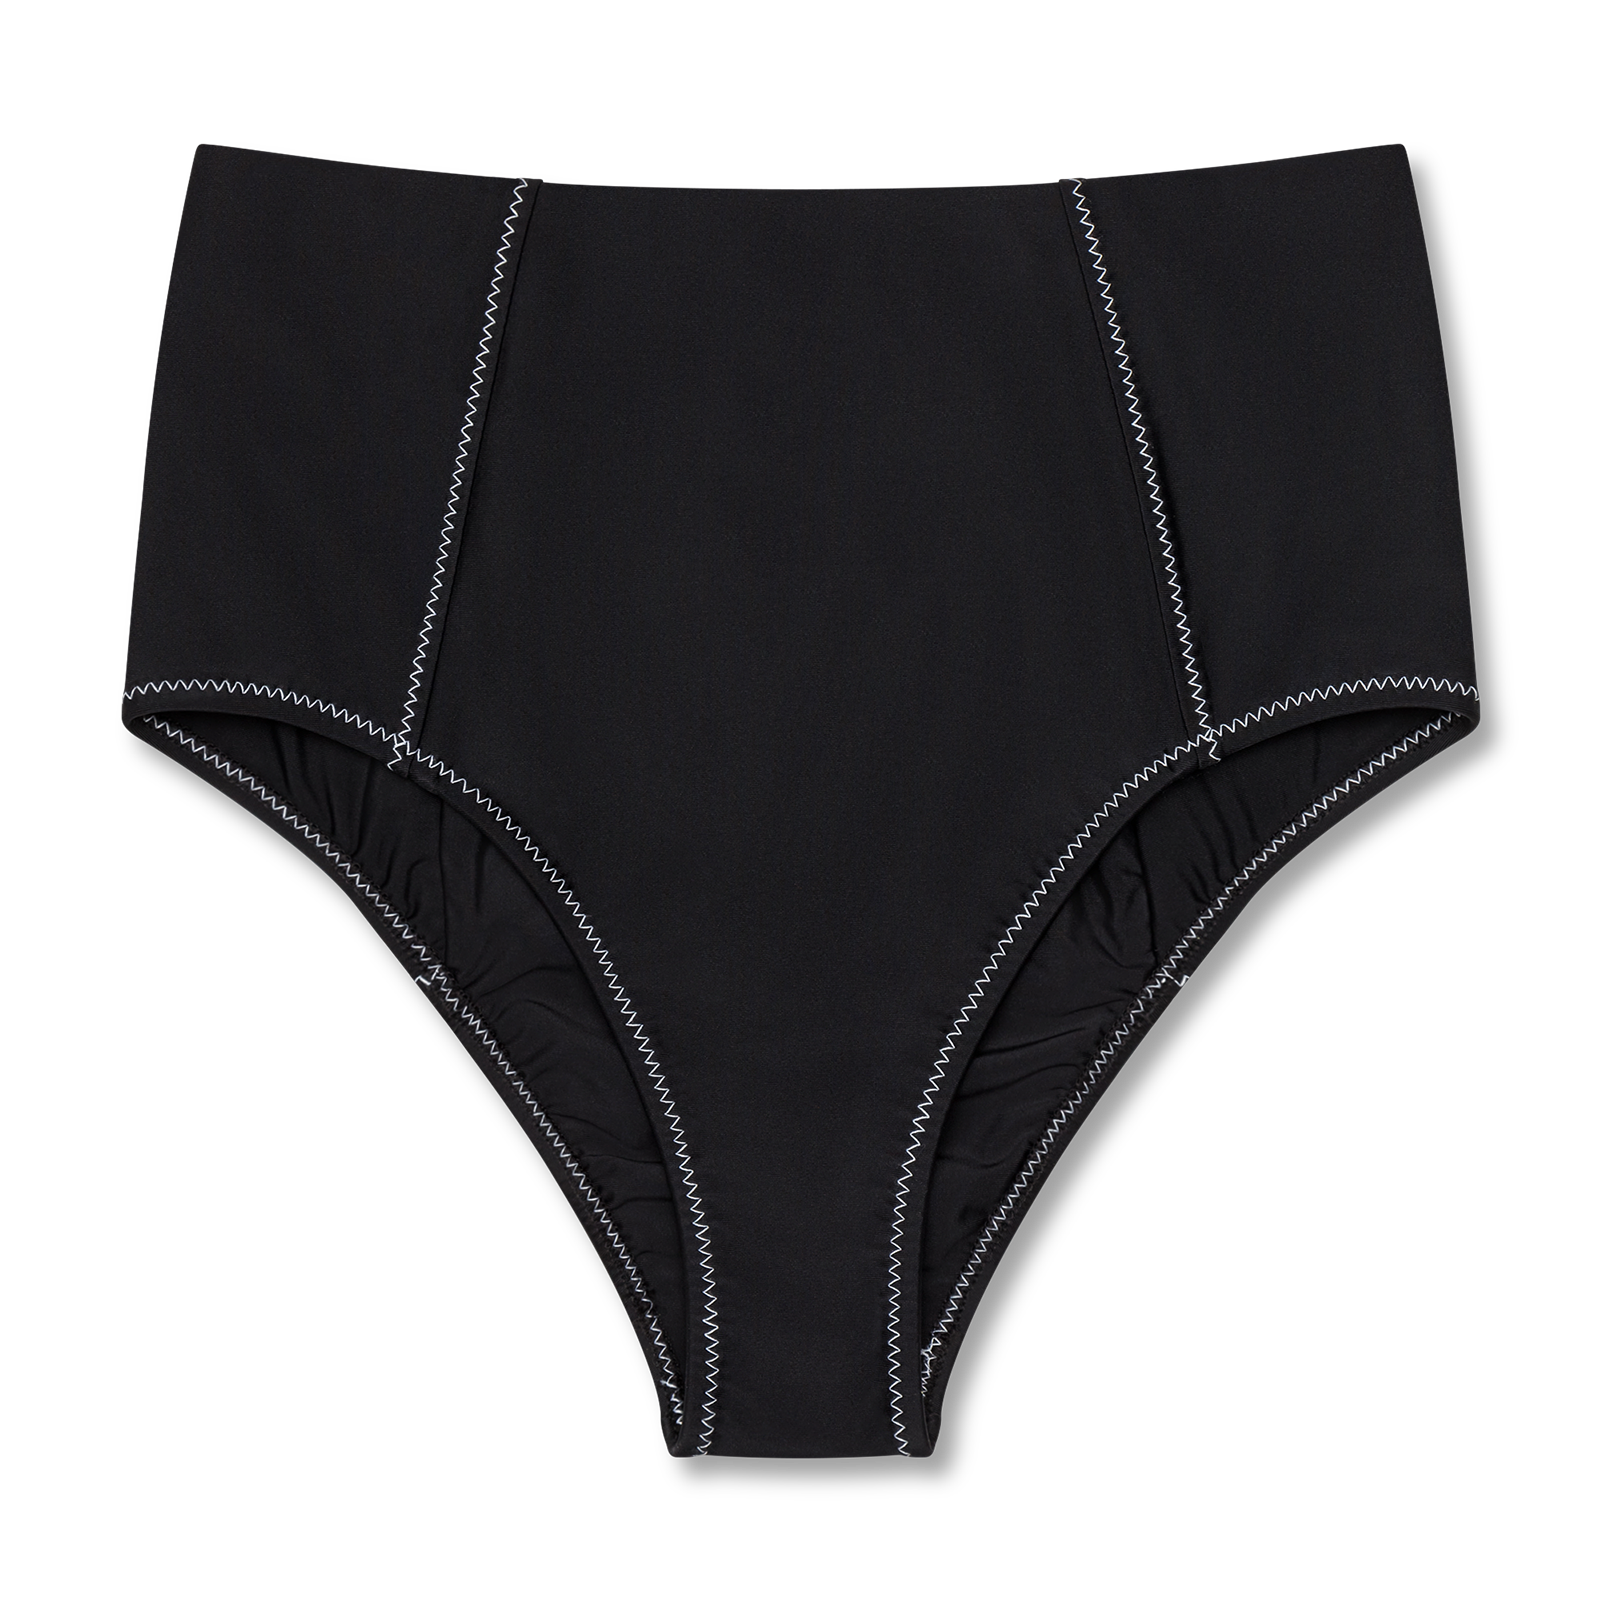 Underwear flat lay product picture